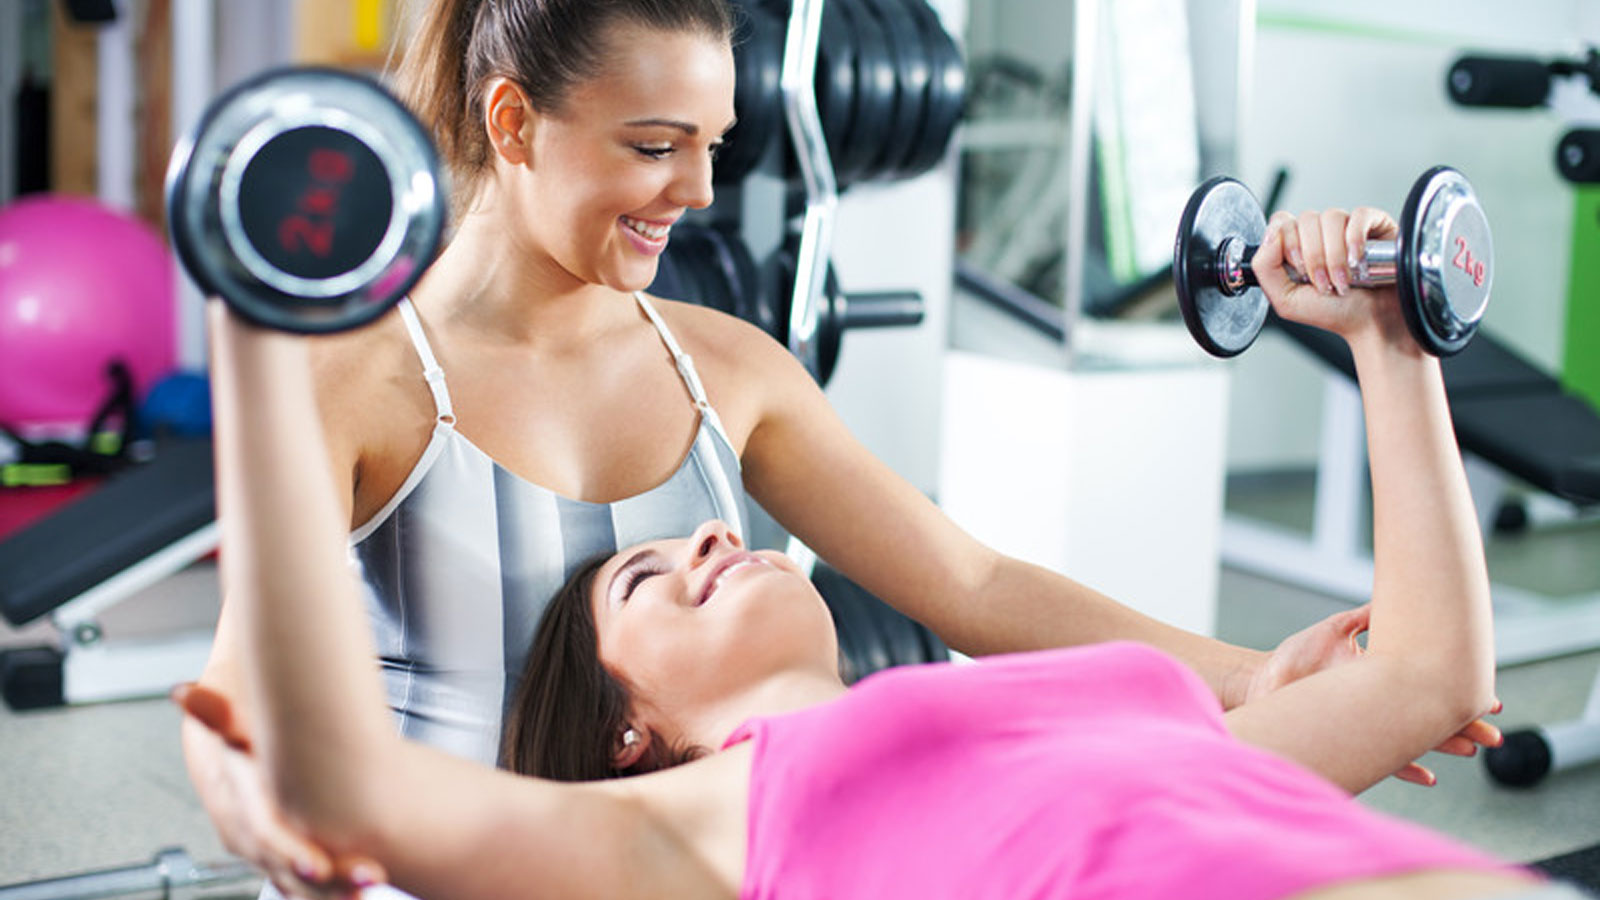 dating your female personal trainer Male personal trainer and your gf (how to, men, cheated, jealous) the gym i used to belong to had 5 personal trainers--4 males and 1 female.